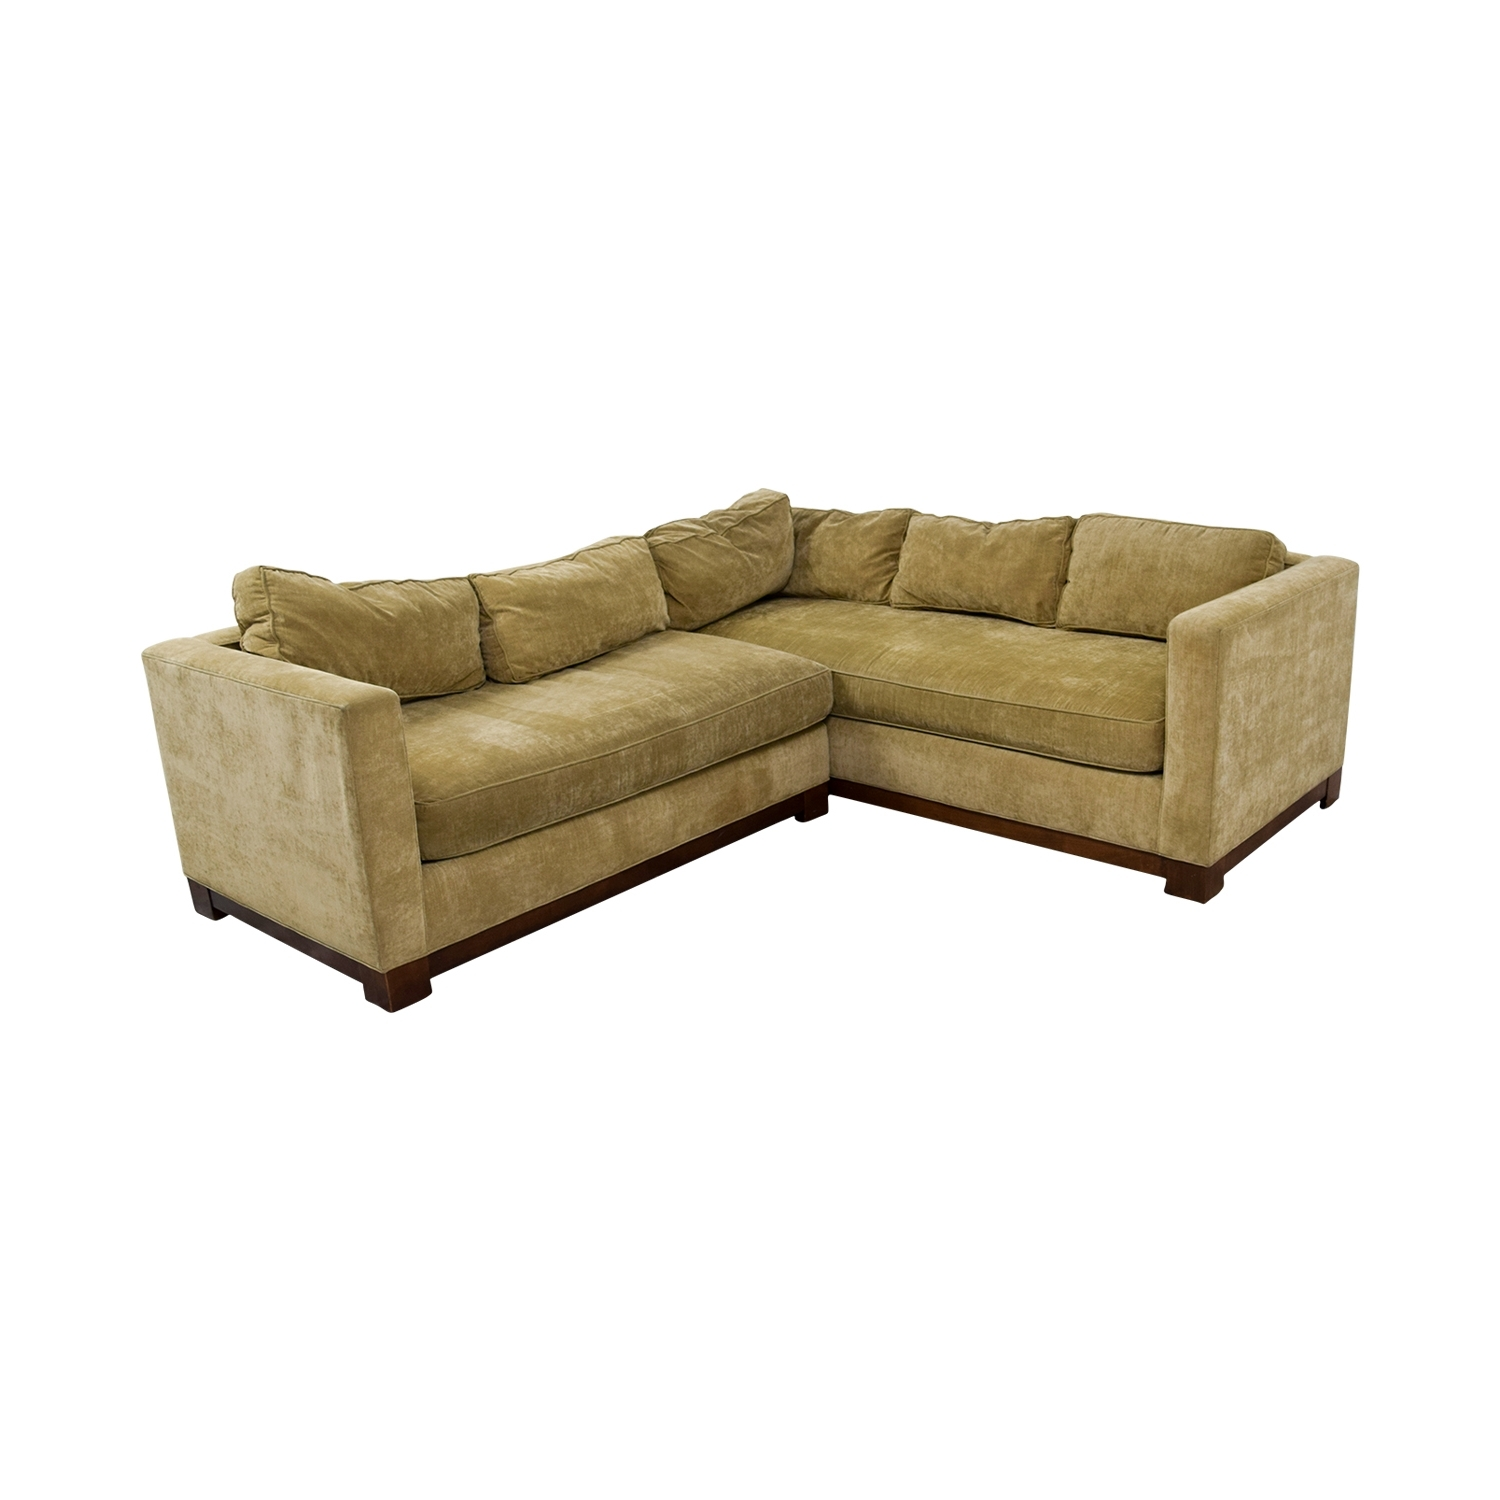 [%84% Off – Mitchell Gold + Bob Williams Mitchell Gold + Bob Intended For Famous Gold Sectional Sofas|Gold Sectional Sofas Inside Newest 84% Off – Mitchell Gold + Bob Williams Mitchell Gold + Bob|2018 Gold Sectional Sofas Inside 84% Off – Mitchell Gold + Bob Williams Mitchell Gold + Bob|Popular 84% Off – Mitchell Gold + Bob Williams Mitchell Gold + Bob Regarding Gold Sectional Sofas%] (View 10 of 20)